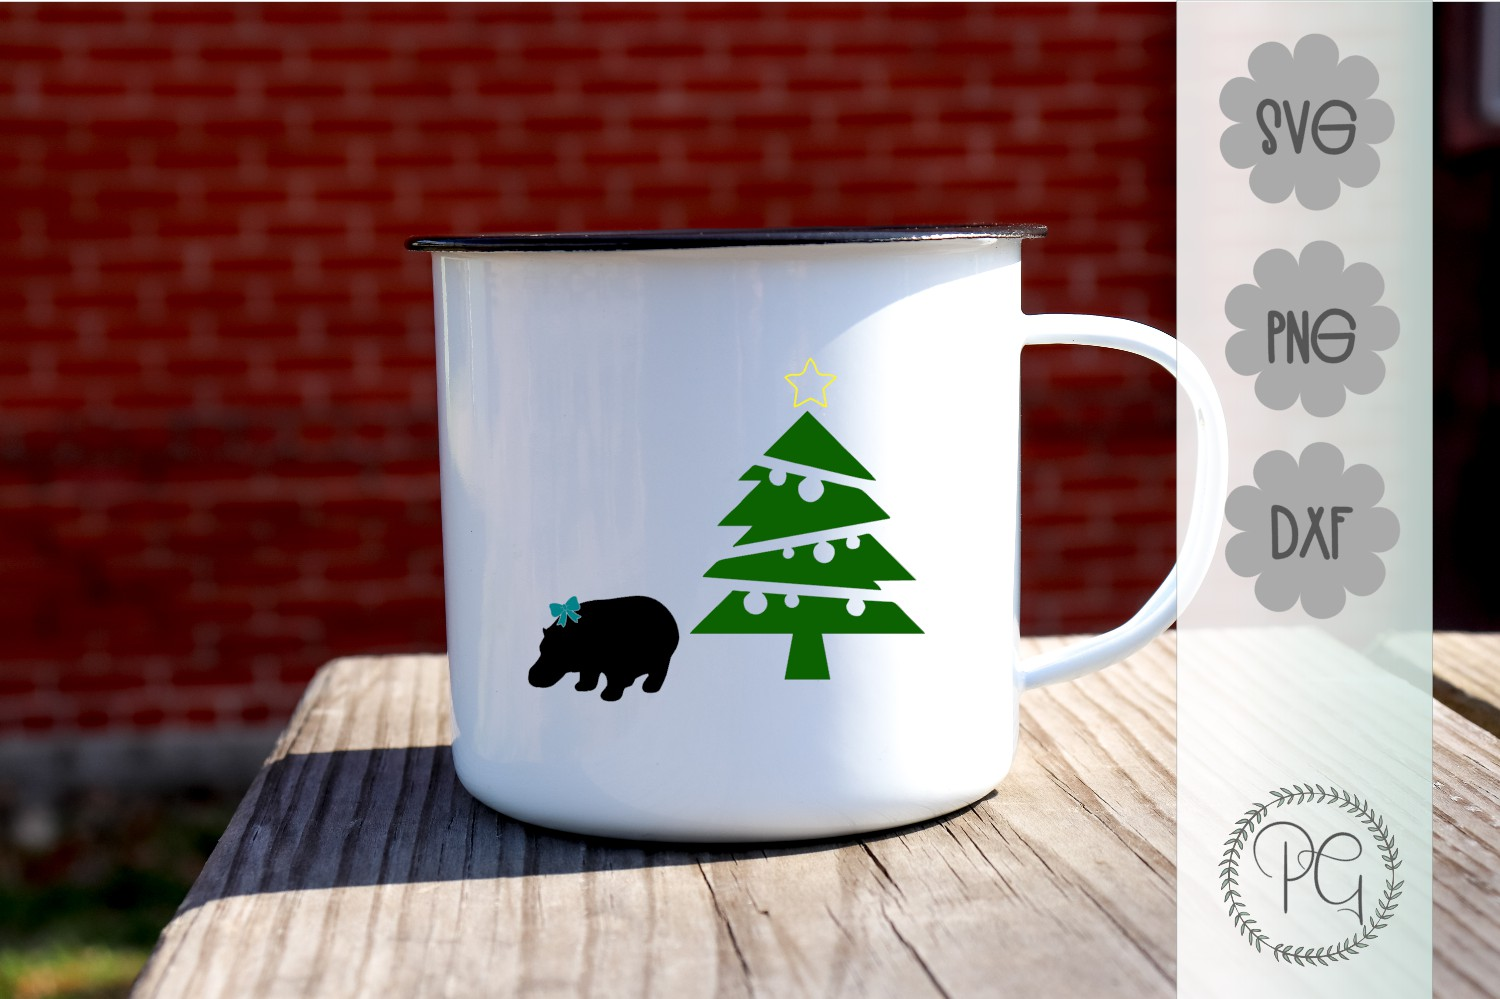 Hippo For Christmas SVG PNG DXF example image 1